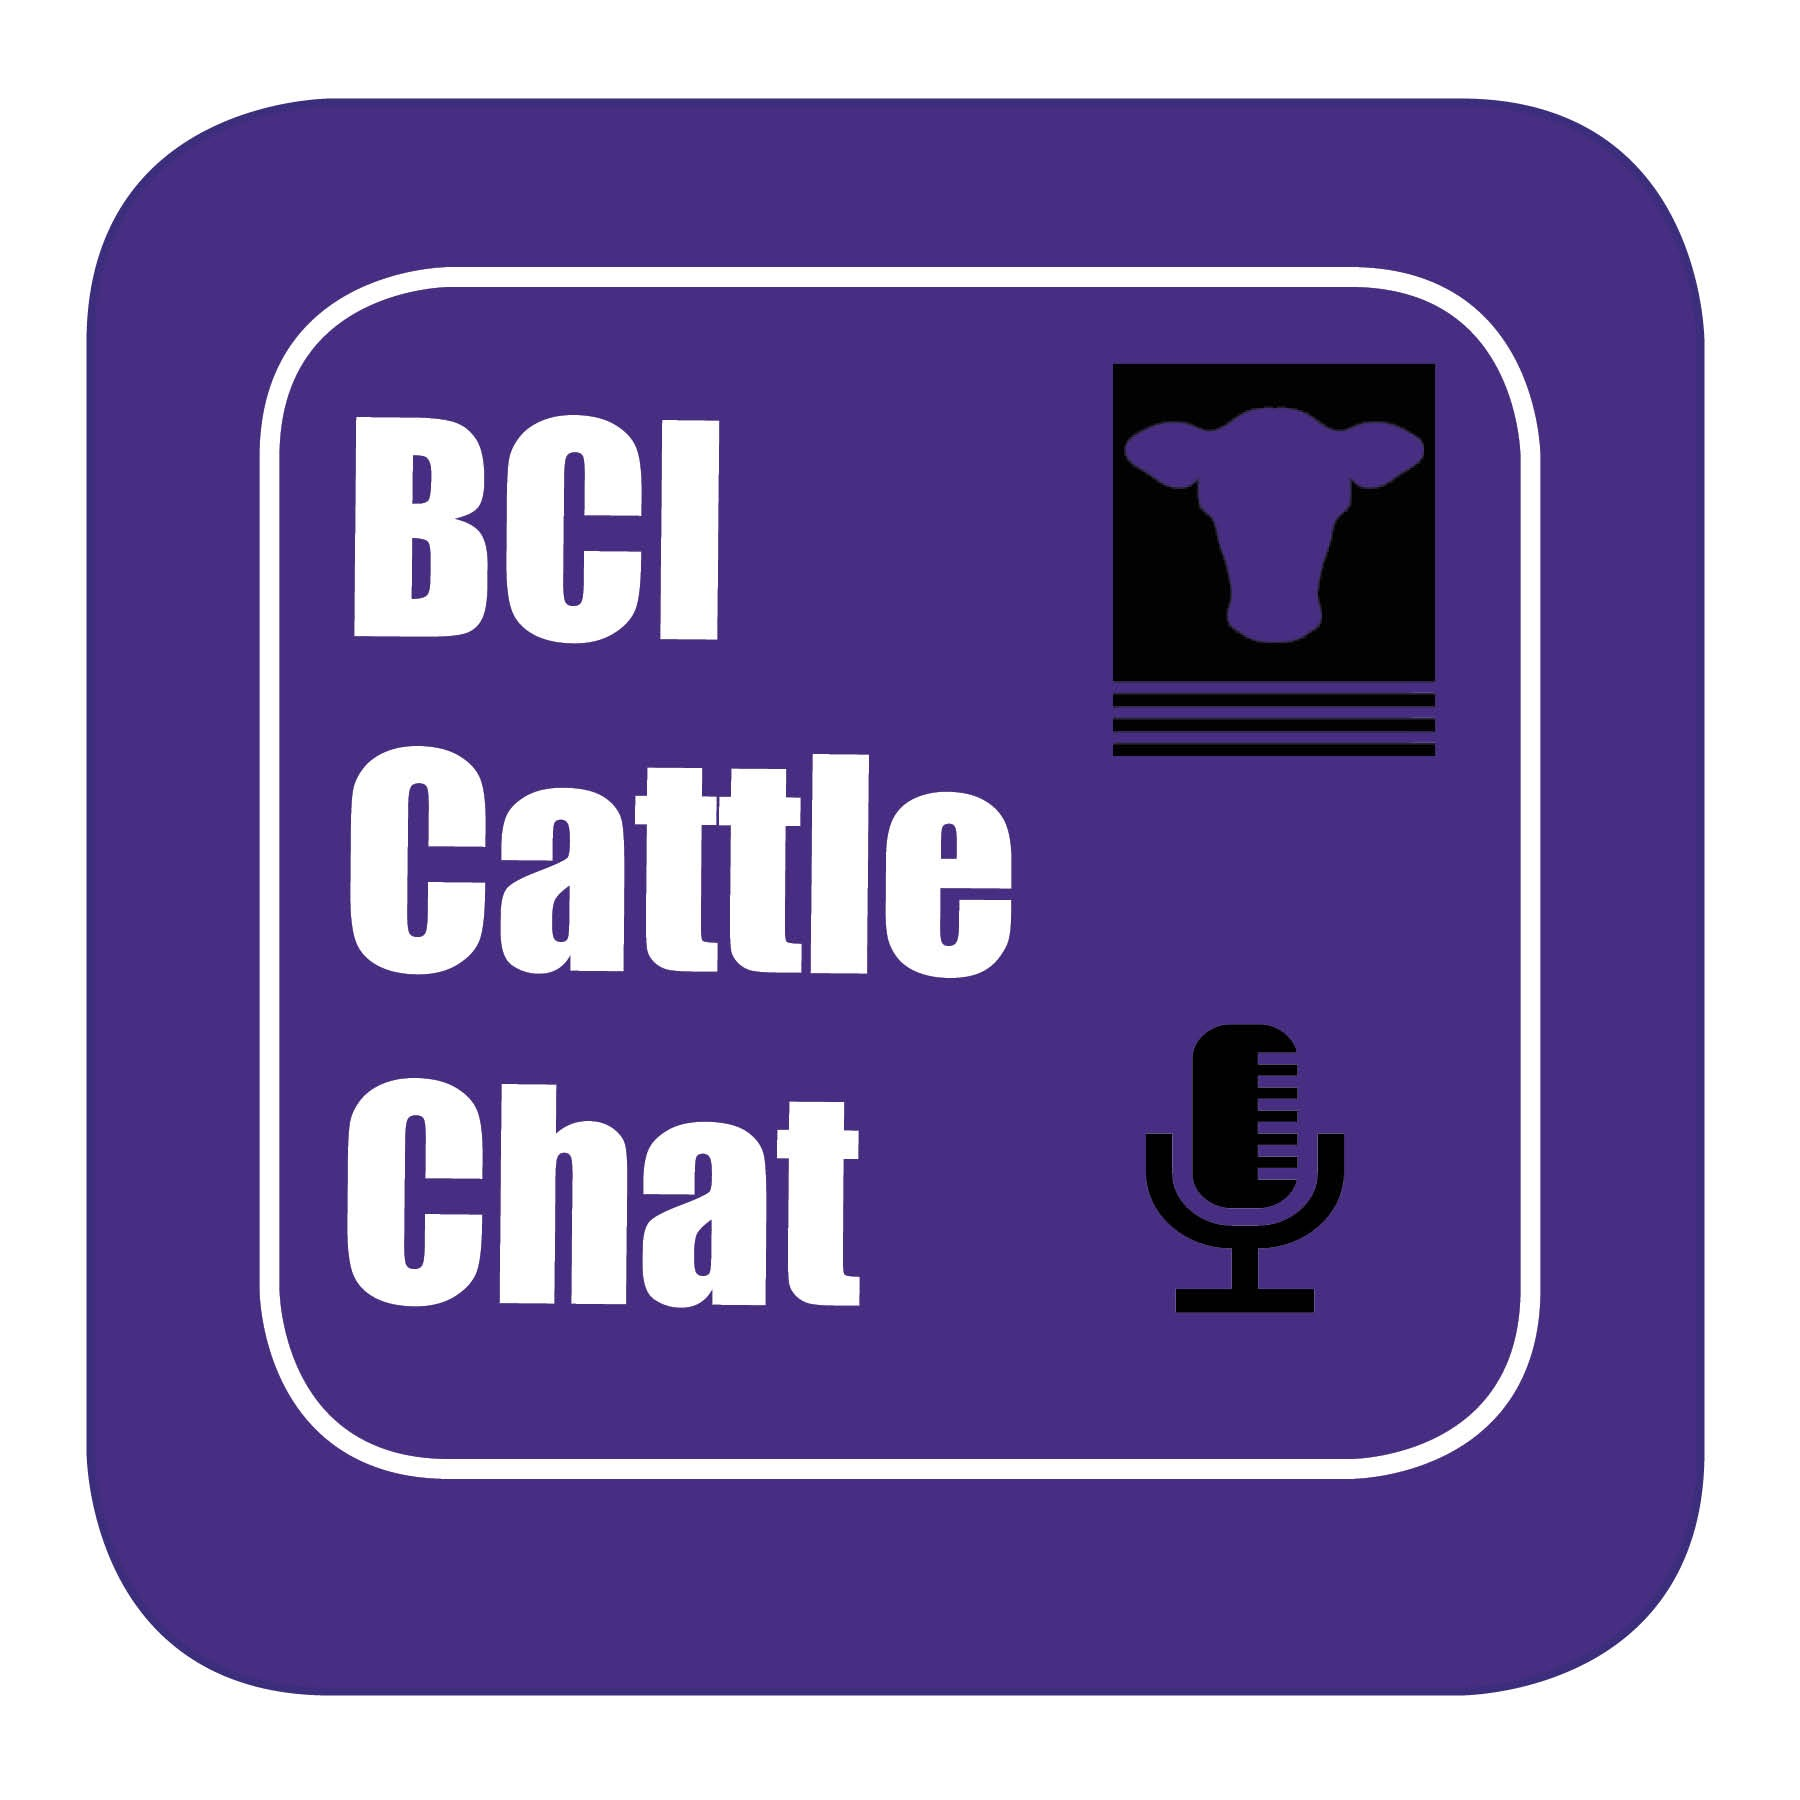 BCI Cattle Chat - Episode 44